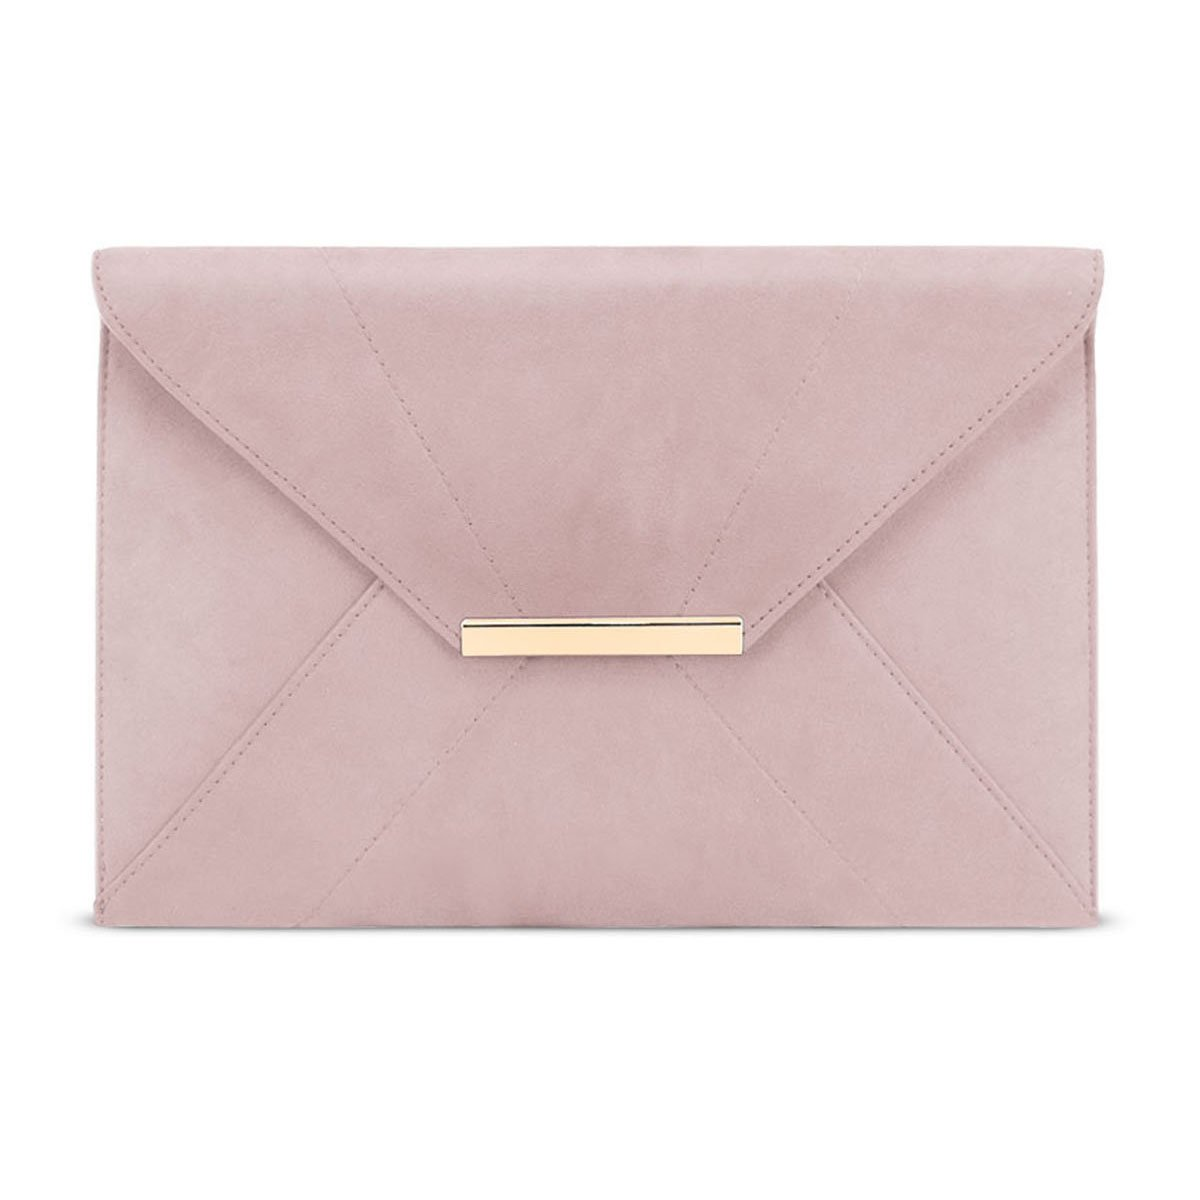 Crossbody Purses for Women,Ladies Envelope Clutch with Removable Chain Strap Wedding Bag Faux Suede Evening Elegant Bag with Pockets Magnet Hook Lightweight Handbag (Pink)